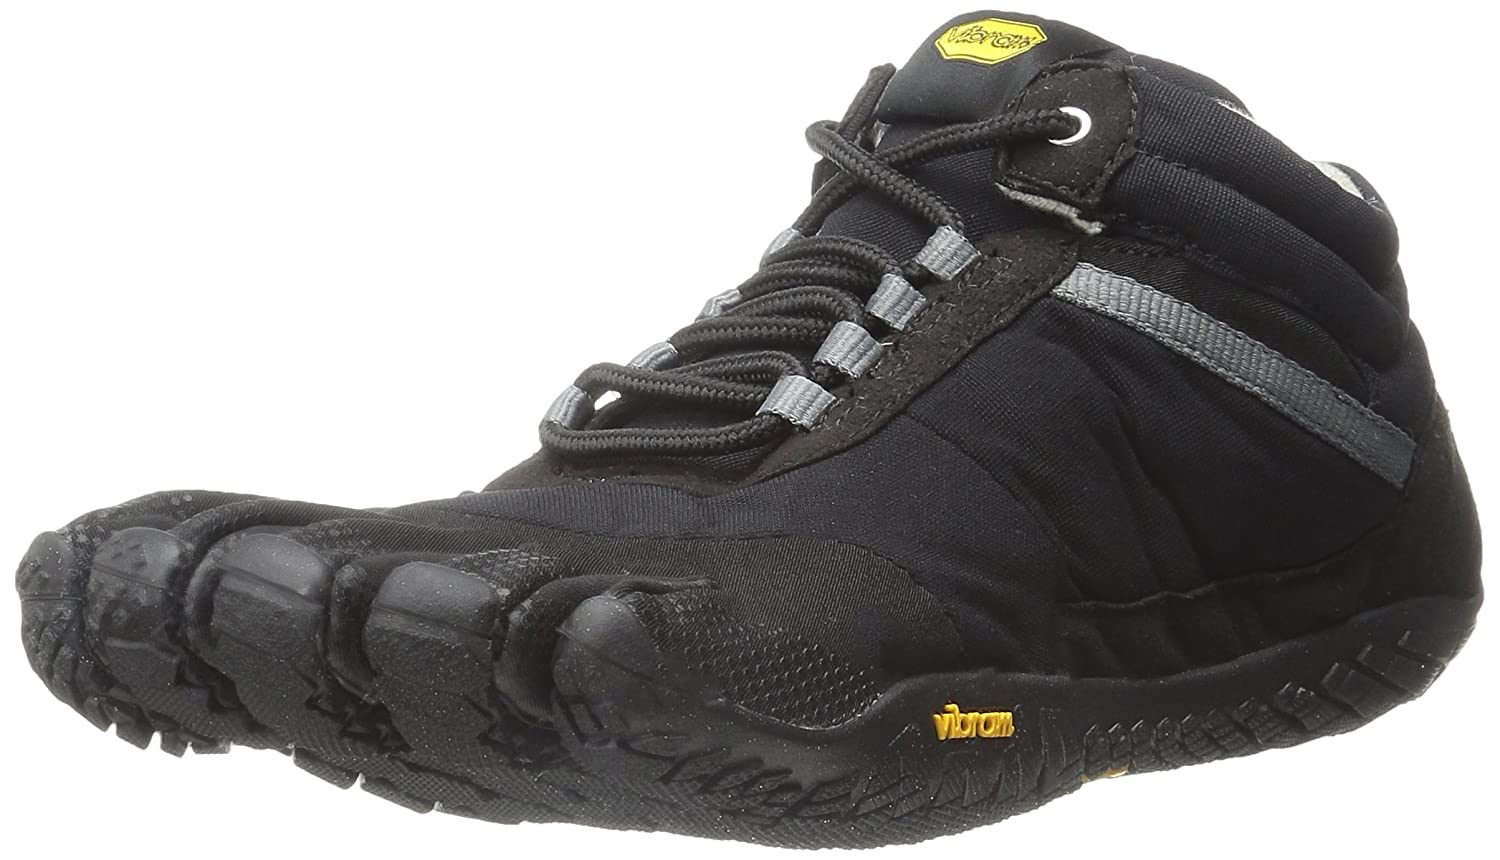 Black Vibram FiveFingers Men's Trek Ascent Insulated Multisport Outdoor shoes